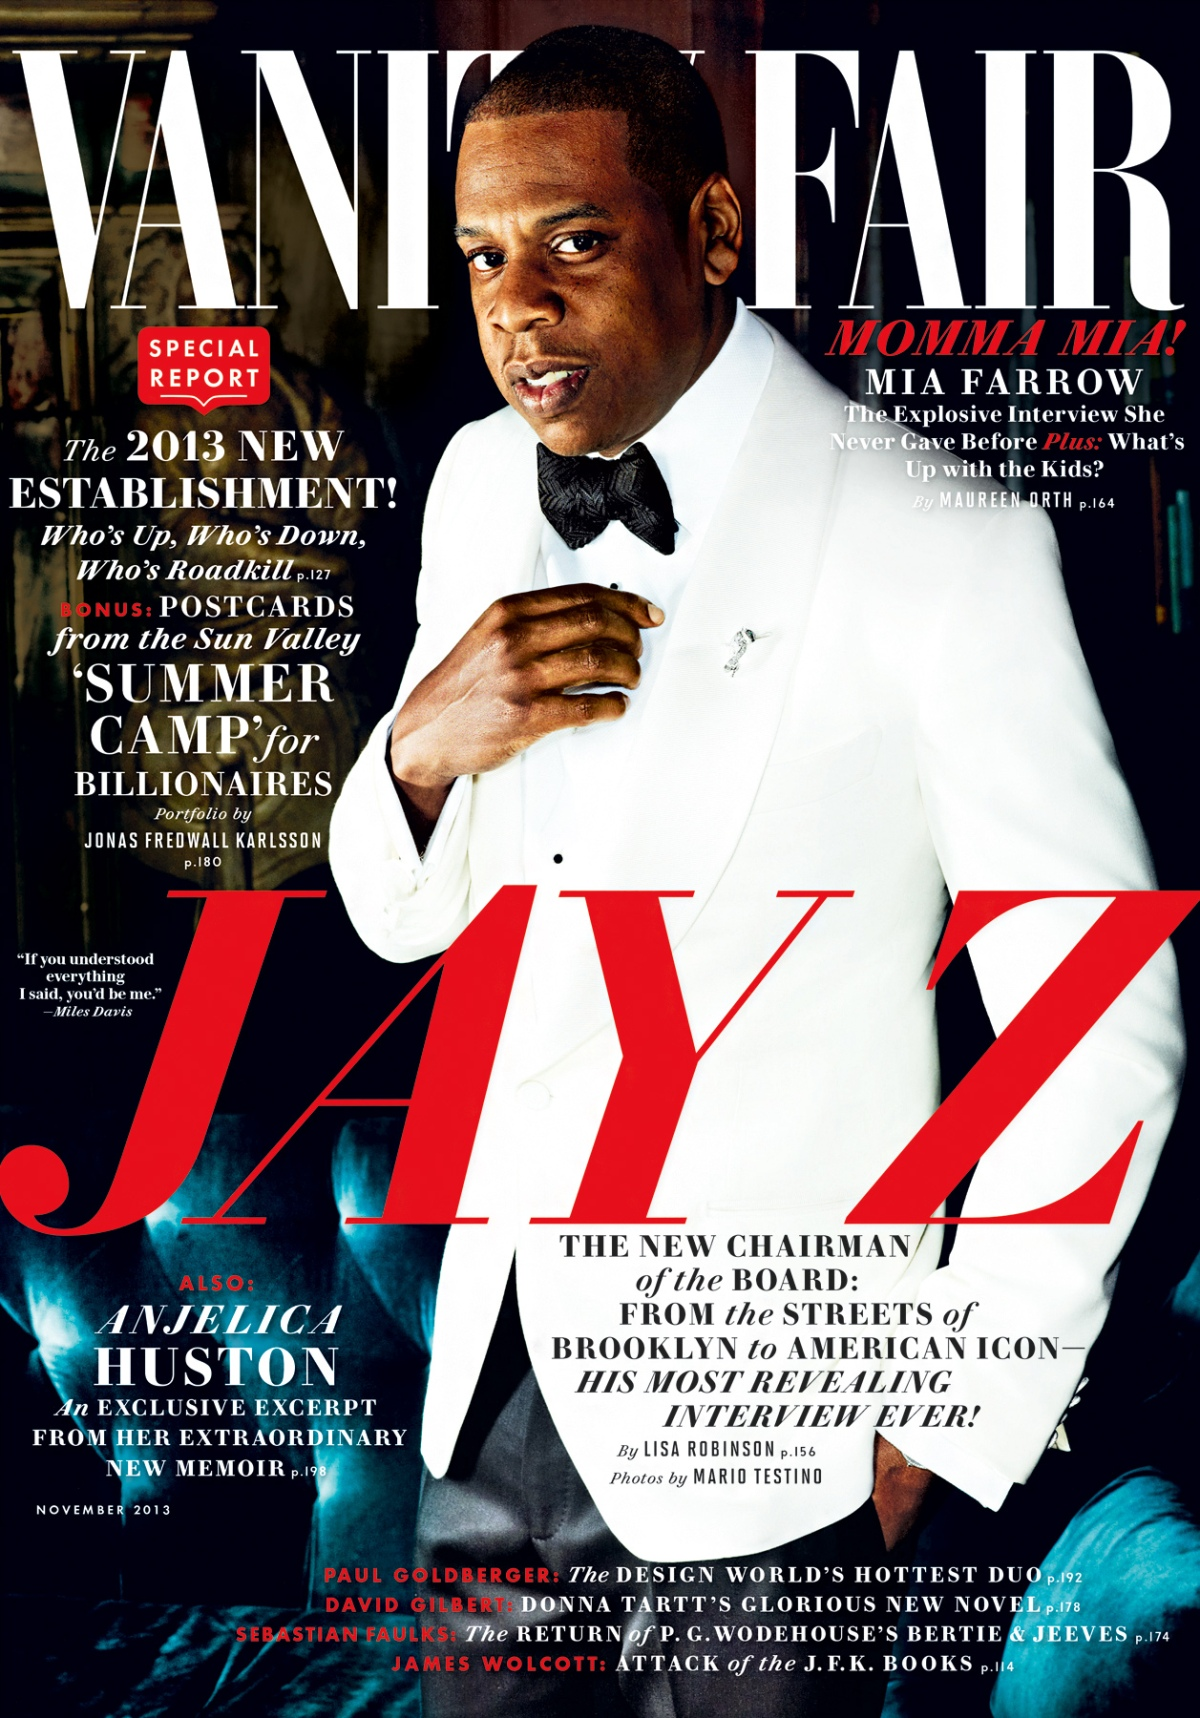 """Jay Z Sold Crack as a Teenager: """"I Was Thinking About Surviving"""""""